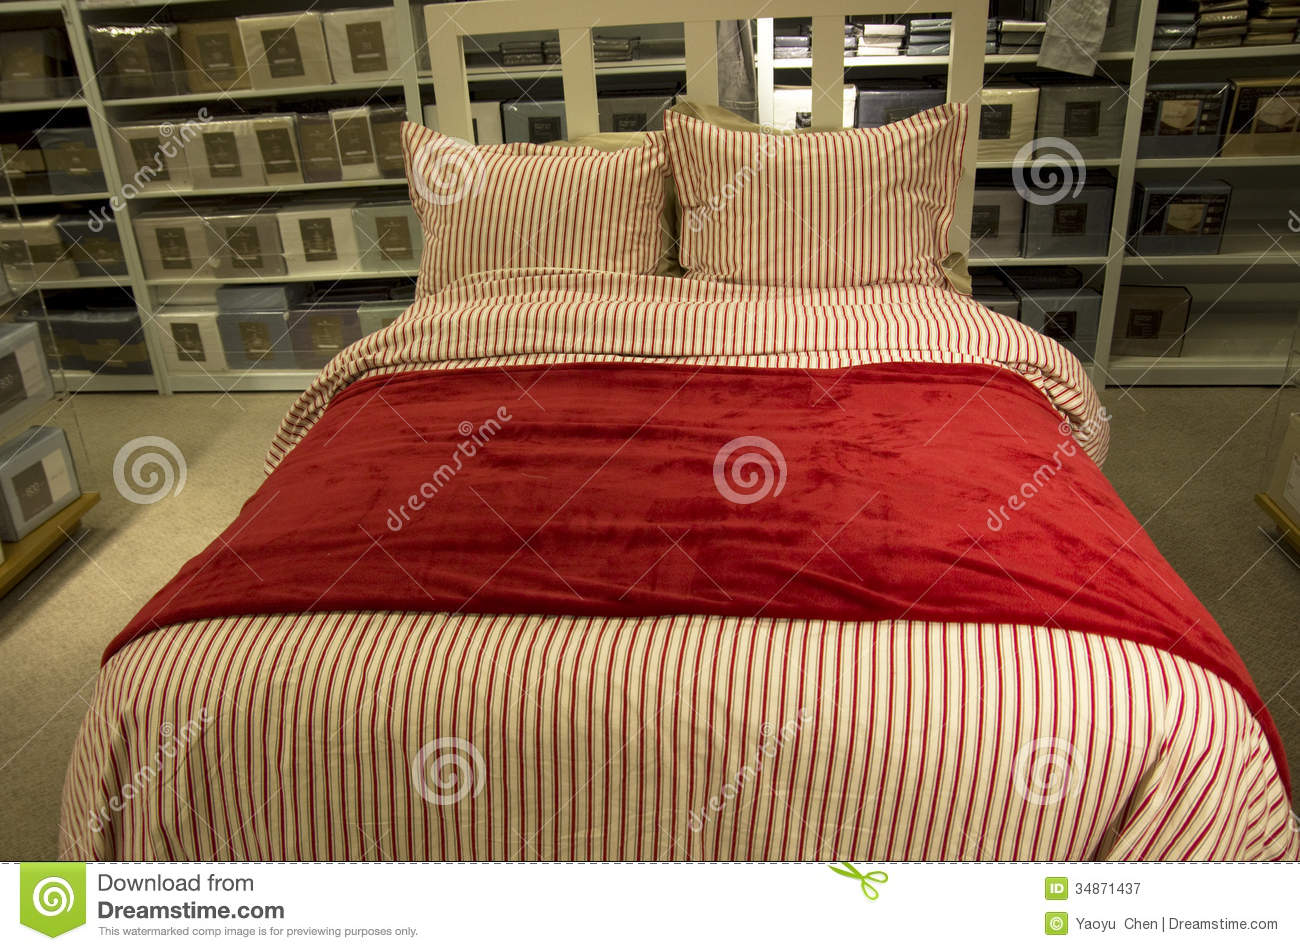 Home bedroom decor furniture store royalty free stock for Home design furniture store